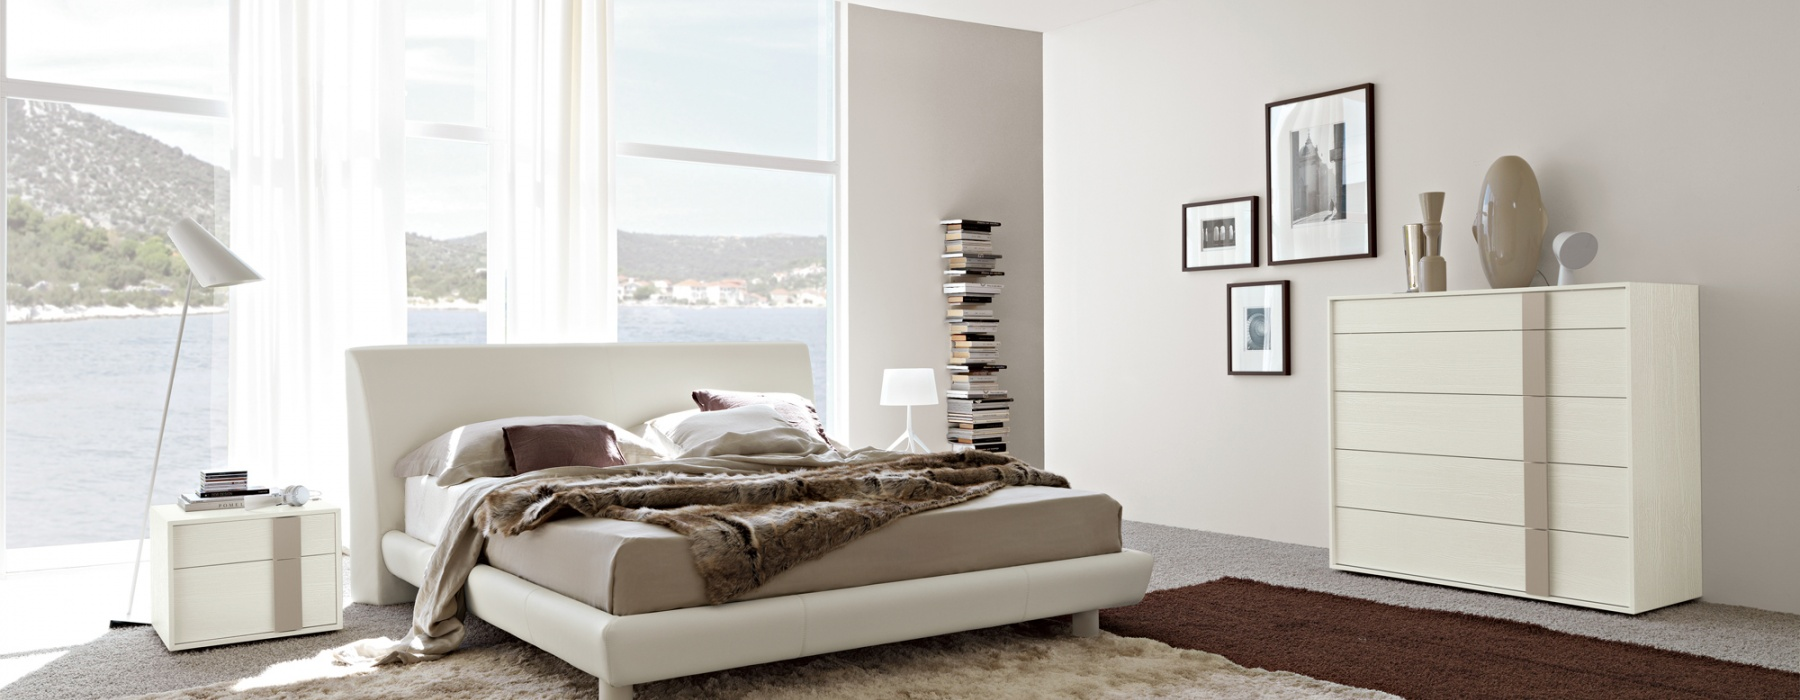 Camere da letto febal catalogo 2014 1 design mon amour - Camere da letto design ...